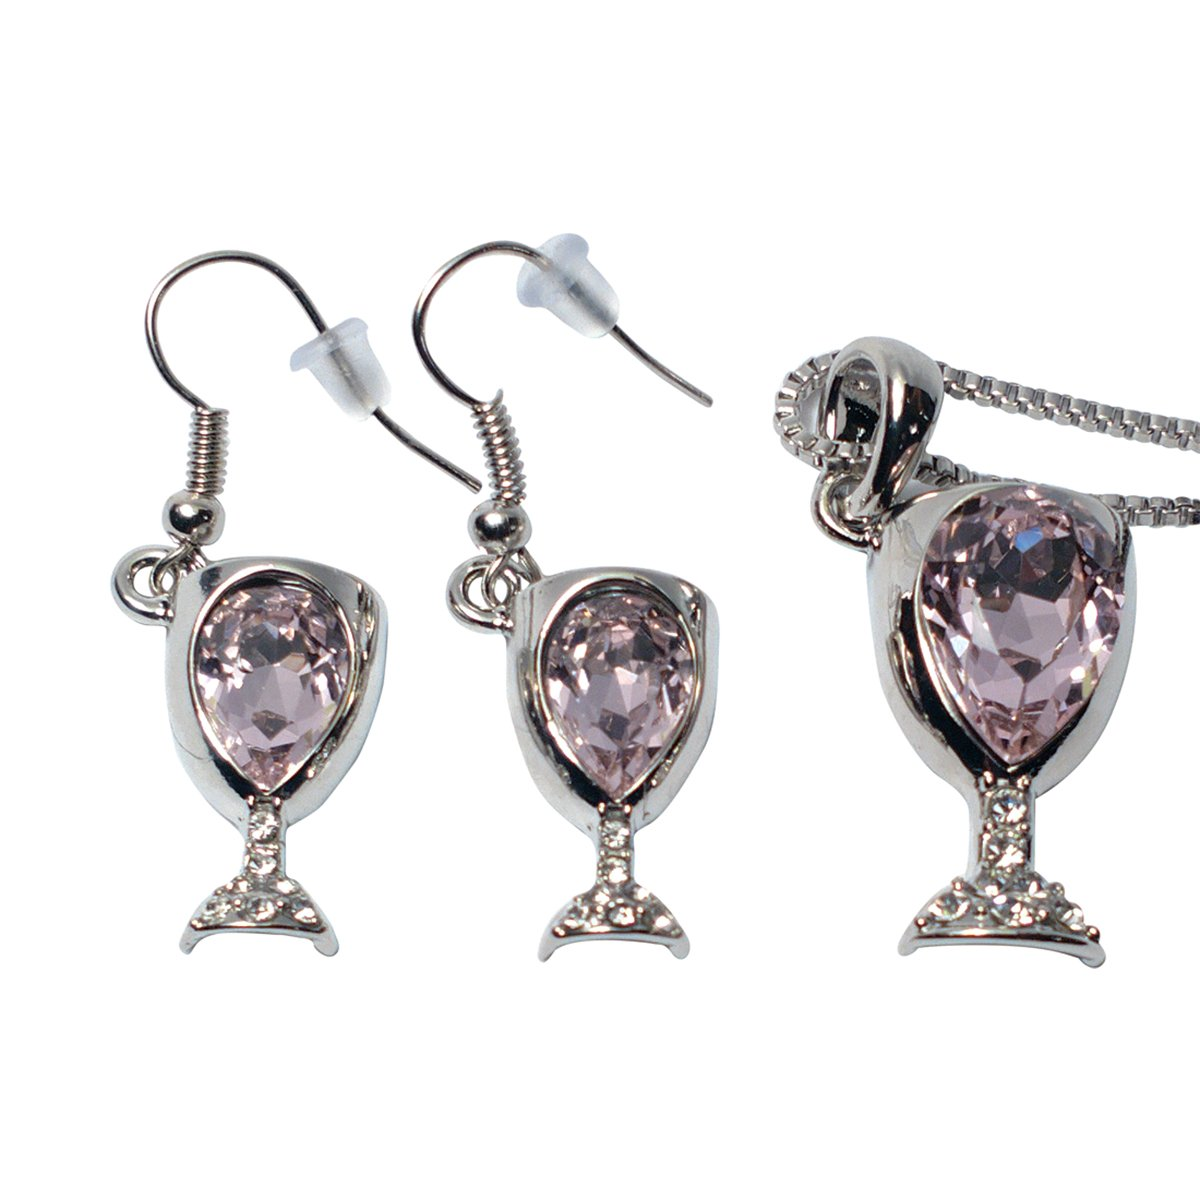 Alloy Wine Glass Necklace and Earrings With Wine Tinted Crystal Set - Fun Wine Gift - Pink